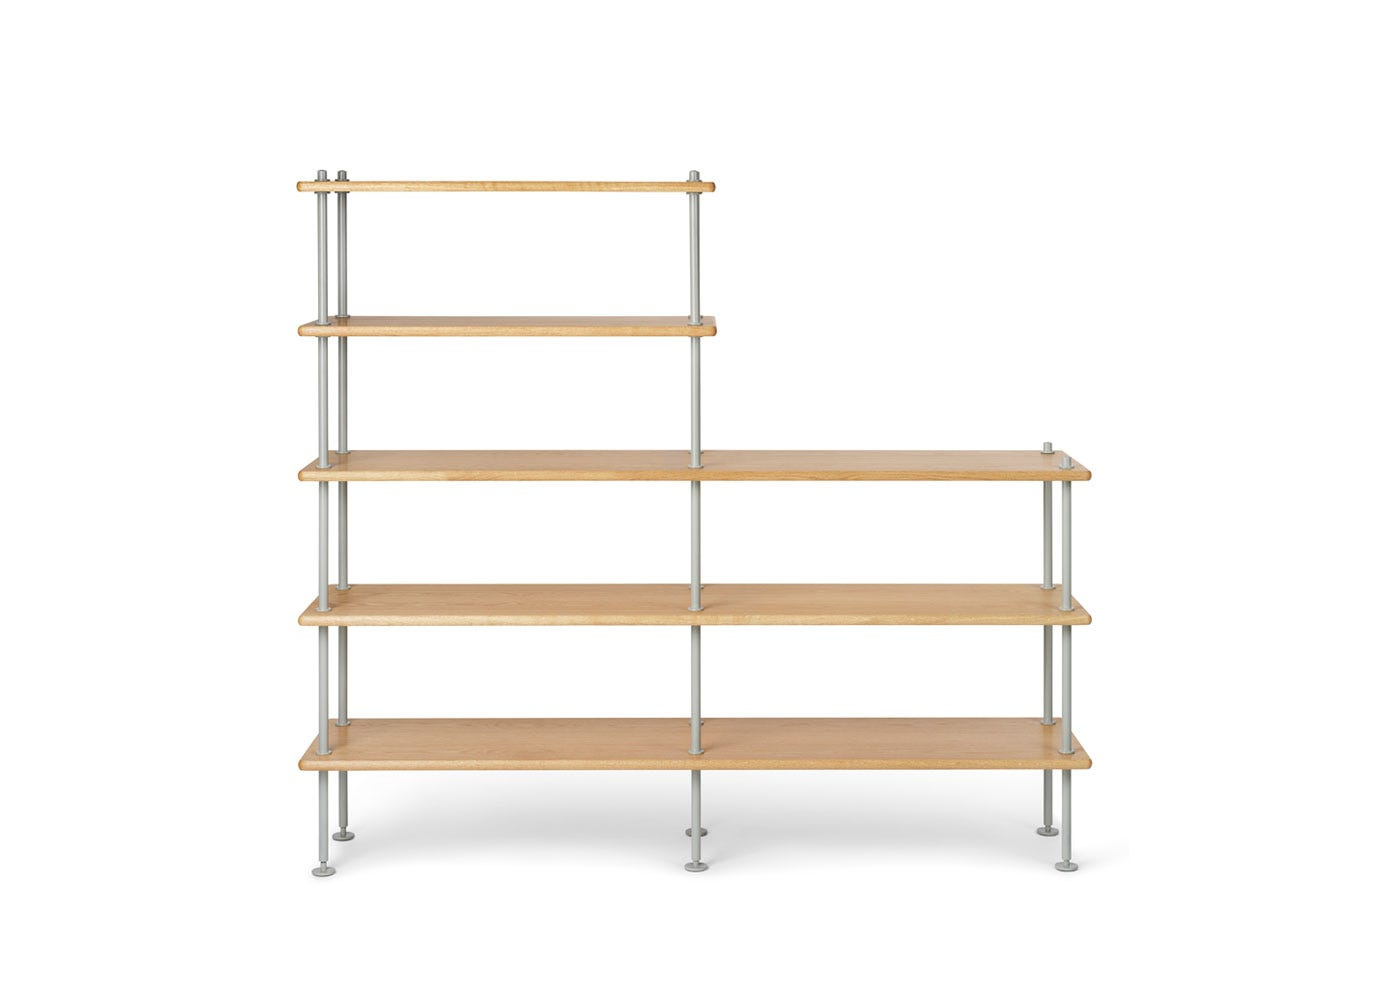 As Shown: BM0253 Shelving System Configuration 2 Oiled Oak and Grey Legs